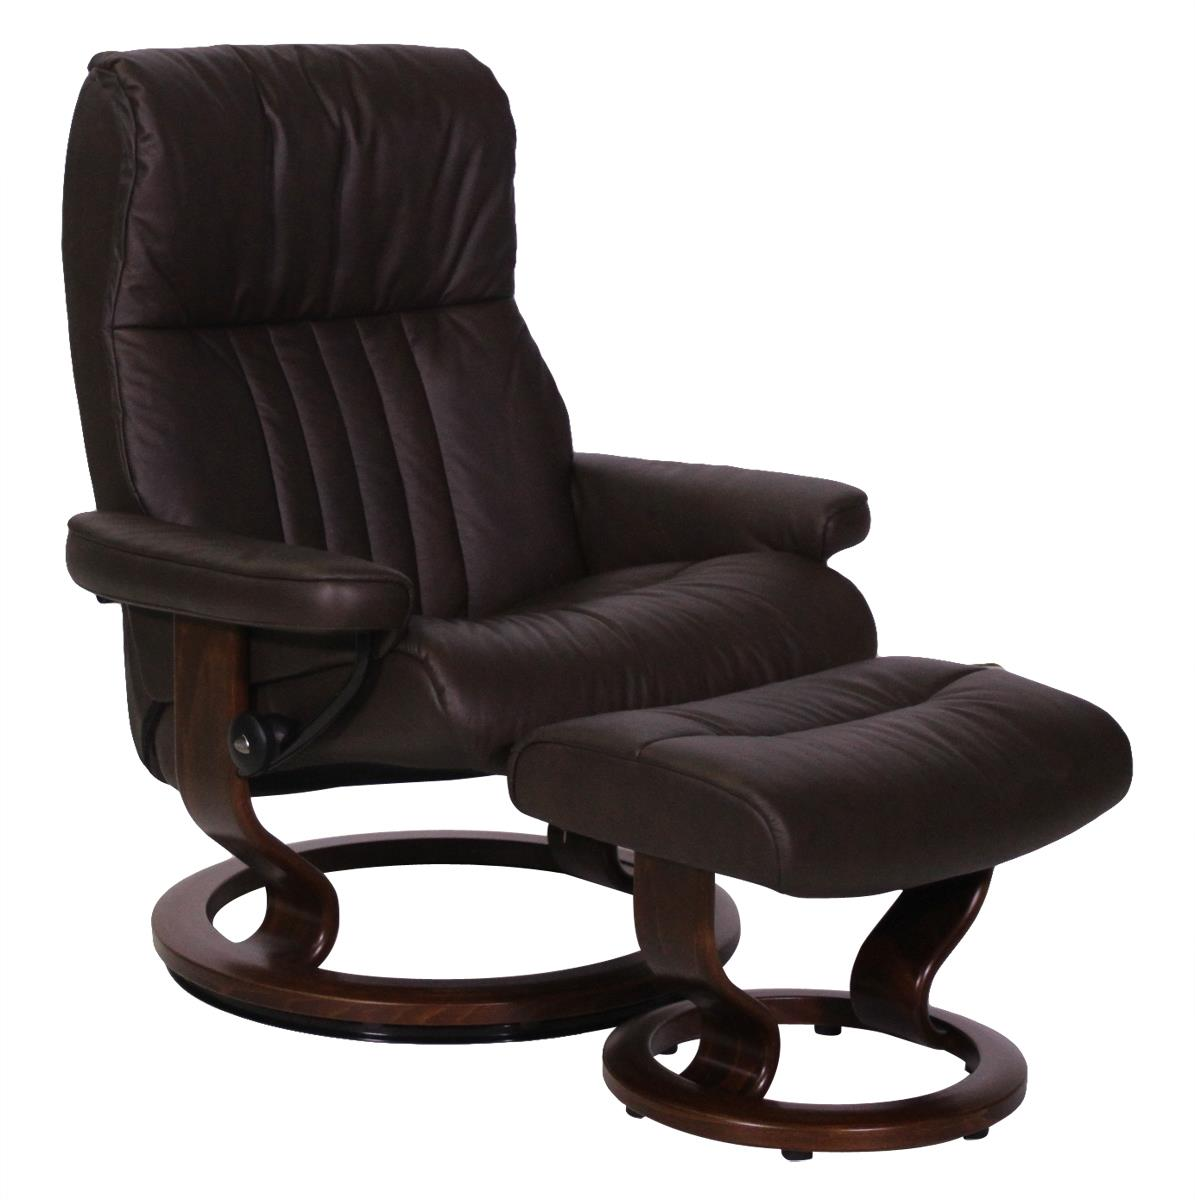 Stressless Recliners With Ottoman Stressless By Ekornes Crown Large Reclining Chair